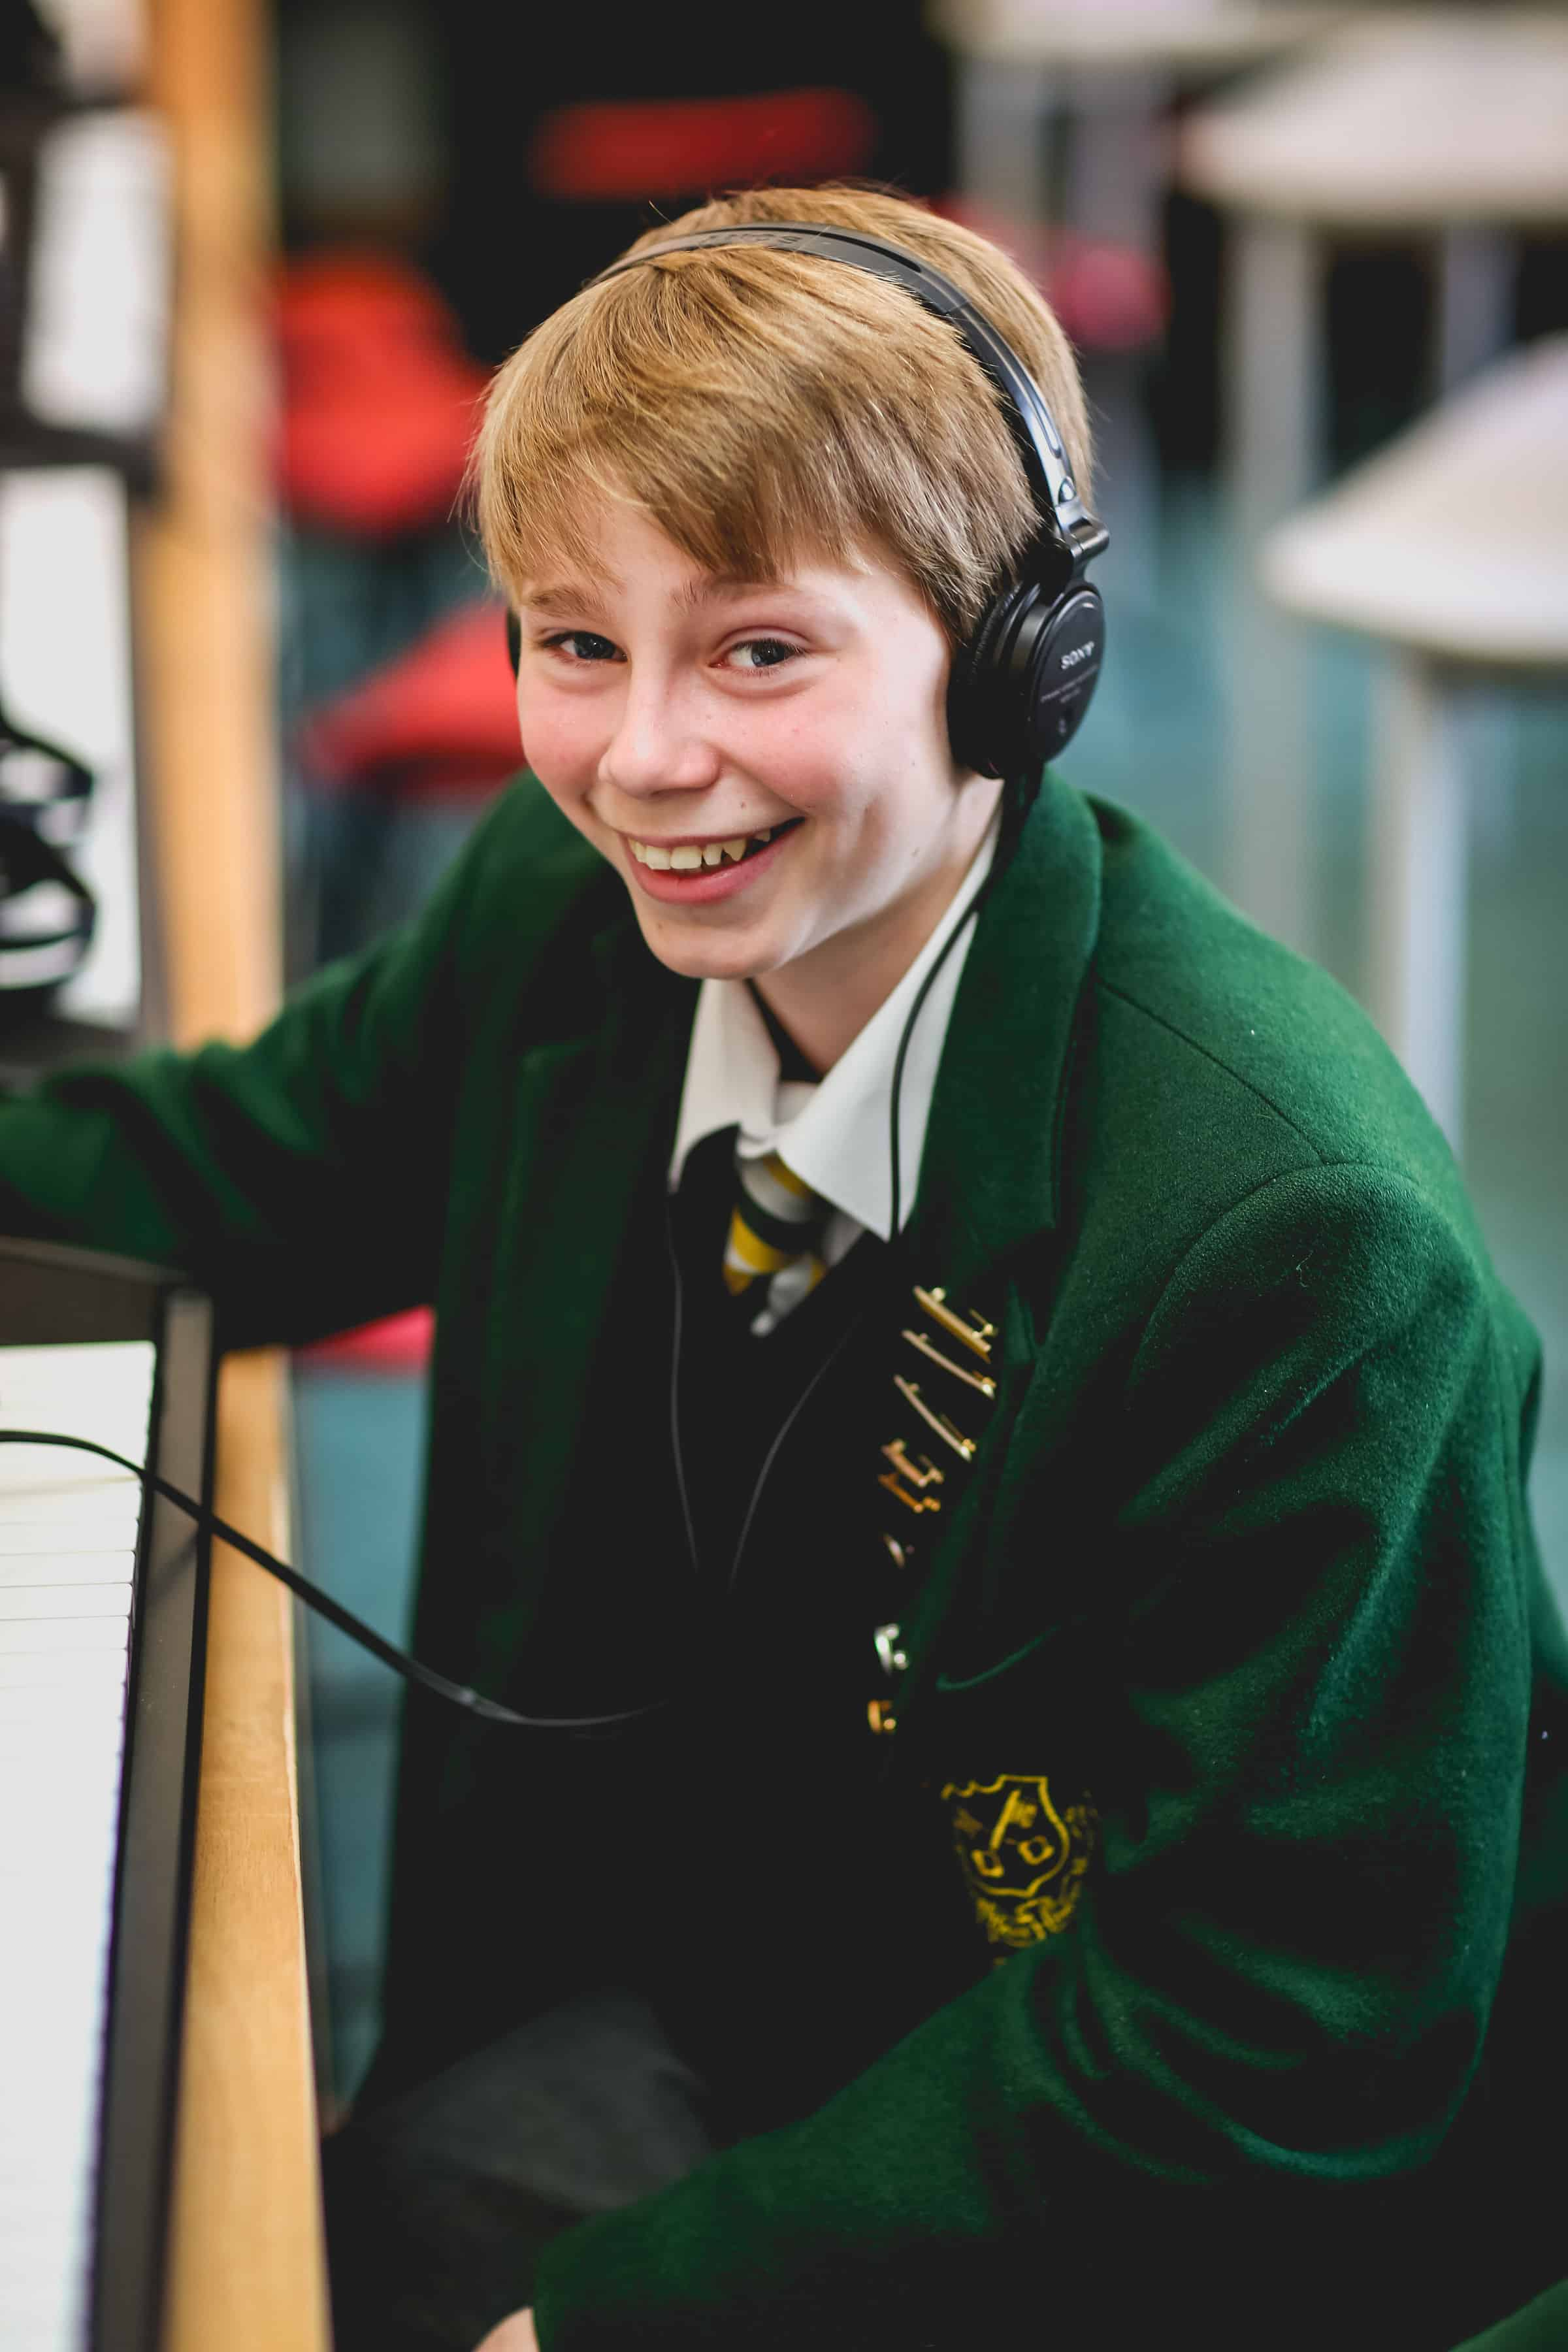 A boy smiling with headphones on